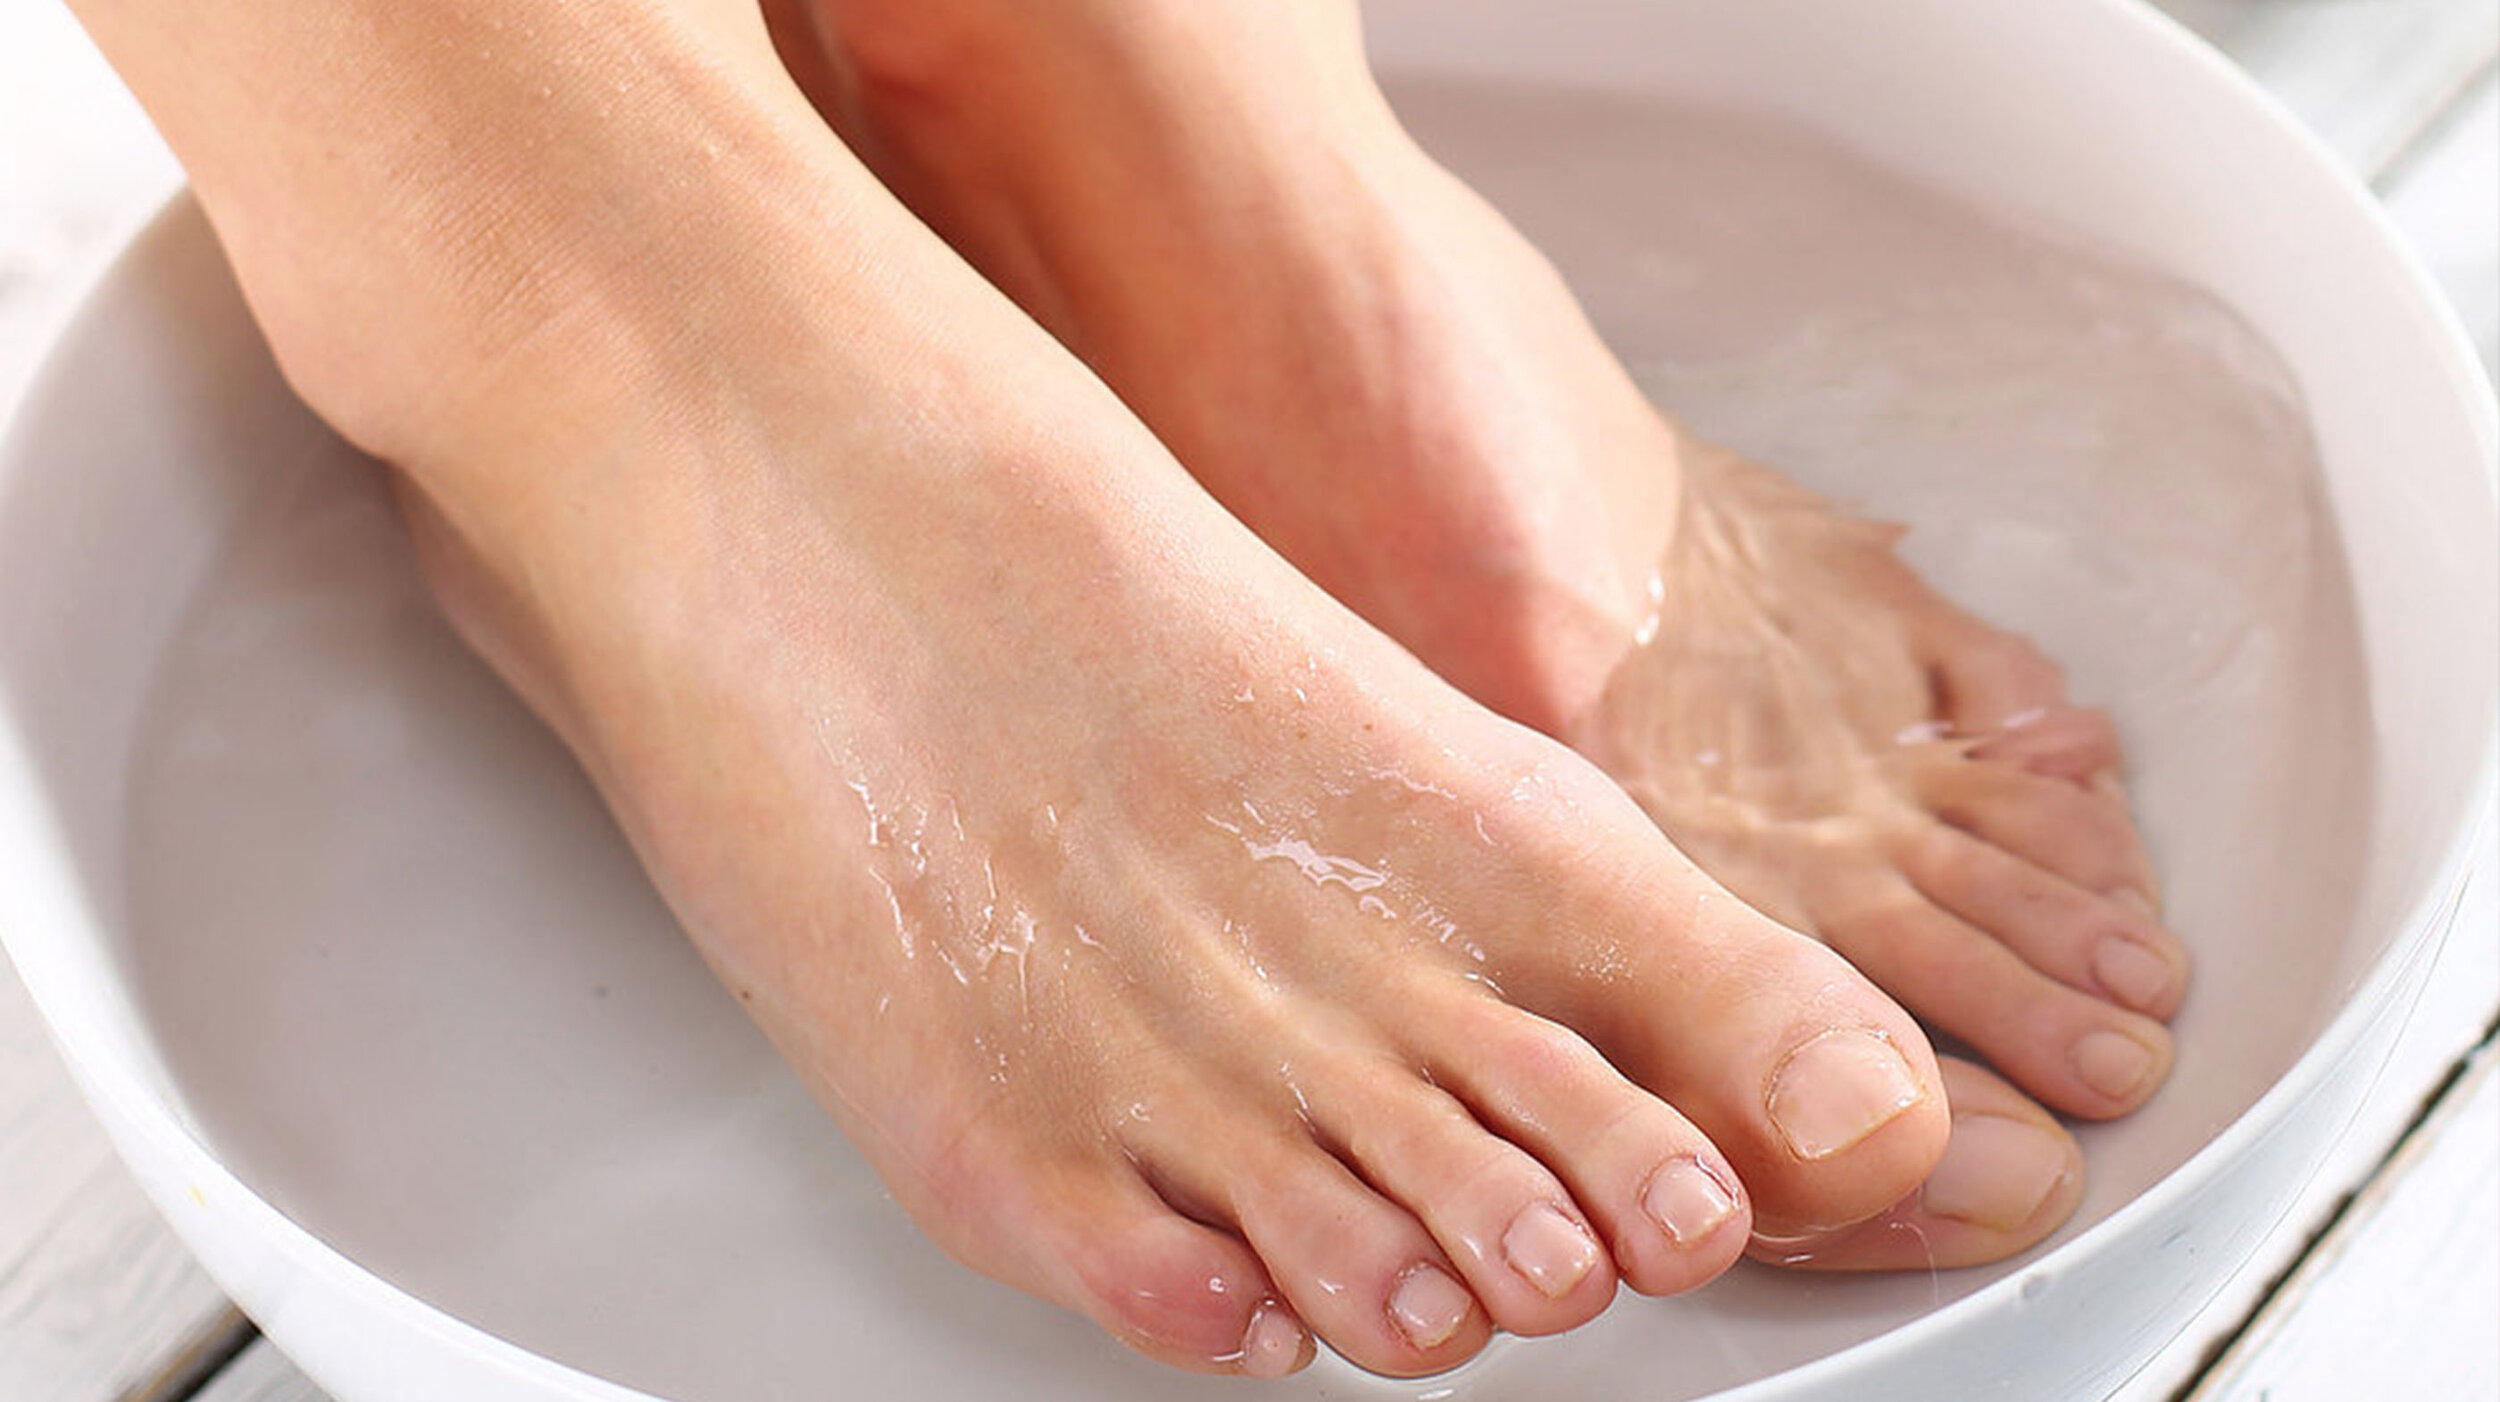 FOOT SOAK w/ ESSENTIAL OILS - ($25 value)Stimulate the body's natural healing processes by bathing your feet in a warm, relaxing foot soak infused with a special selection of curated essential oils.